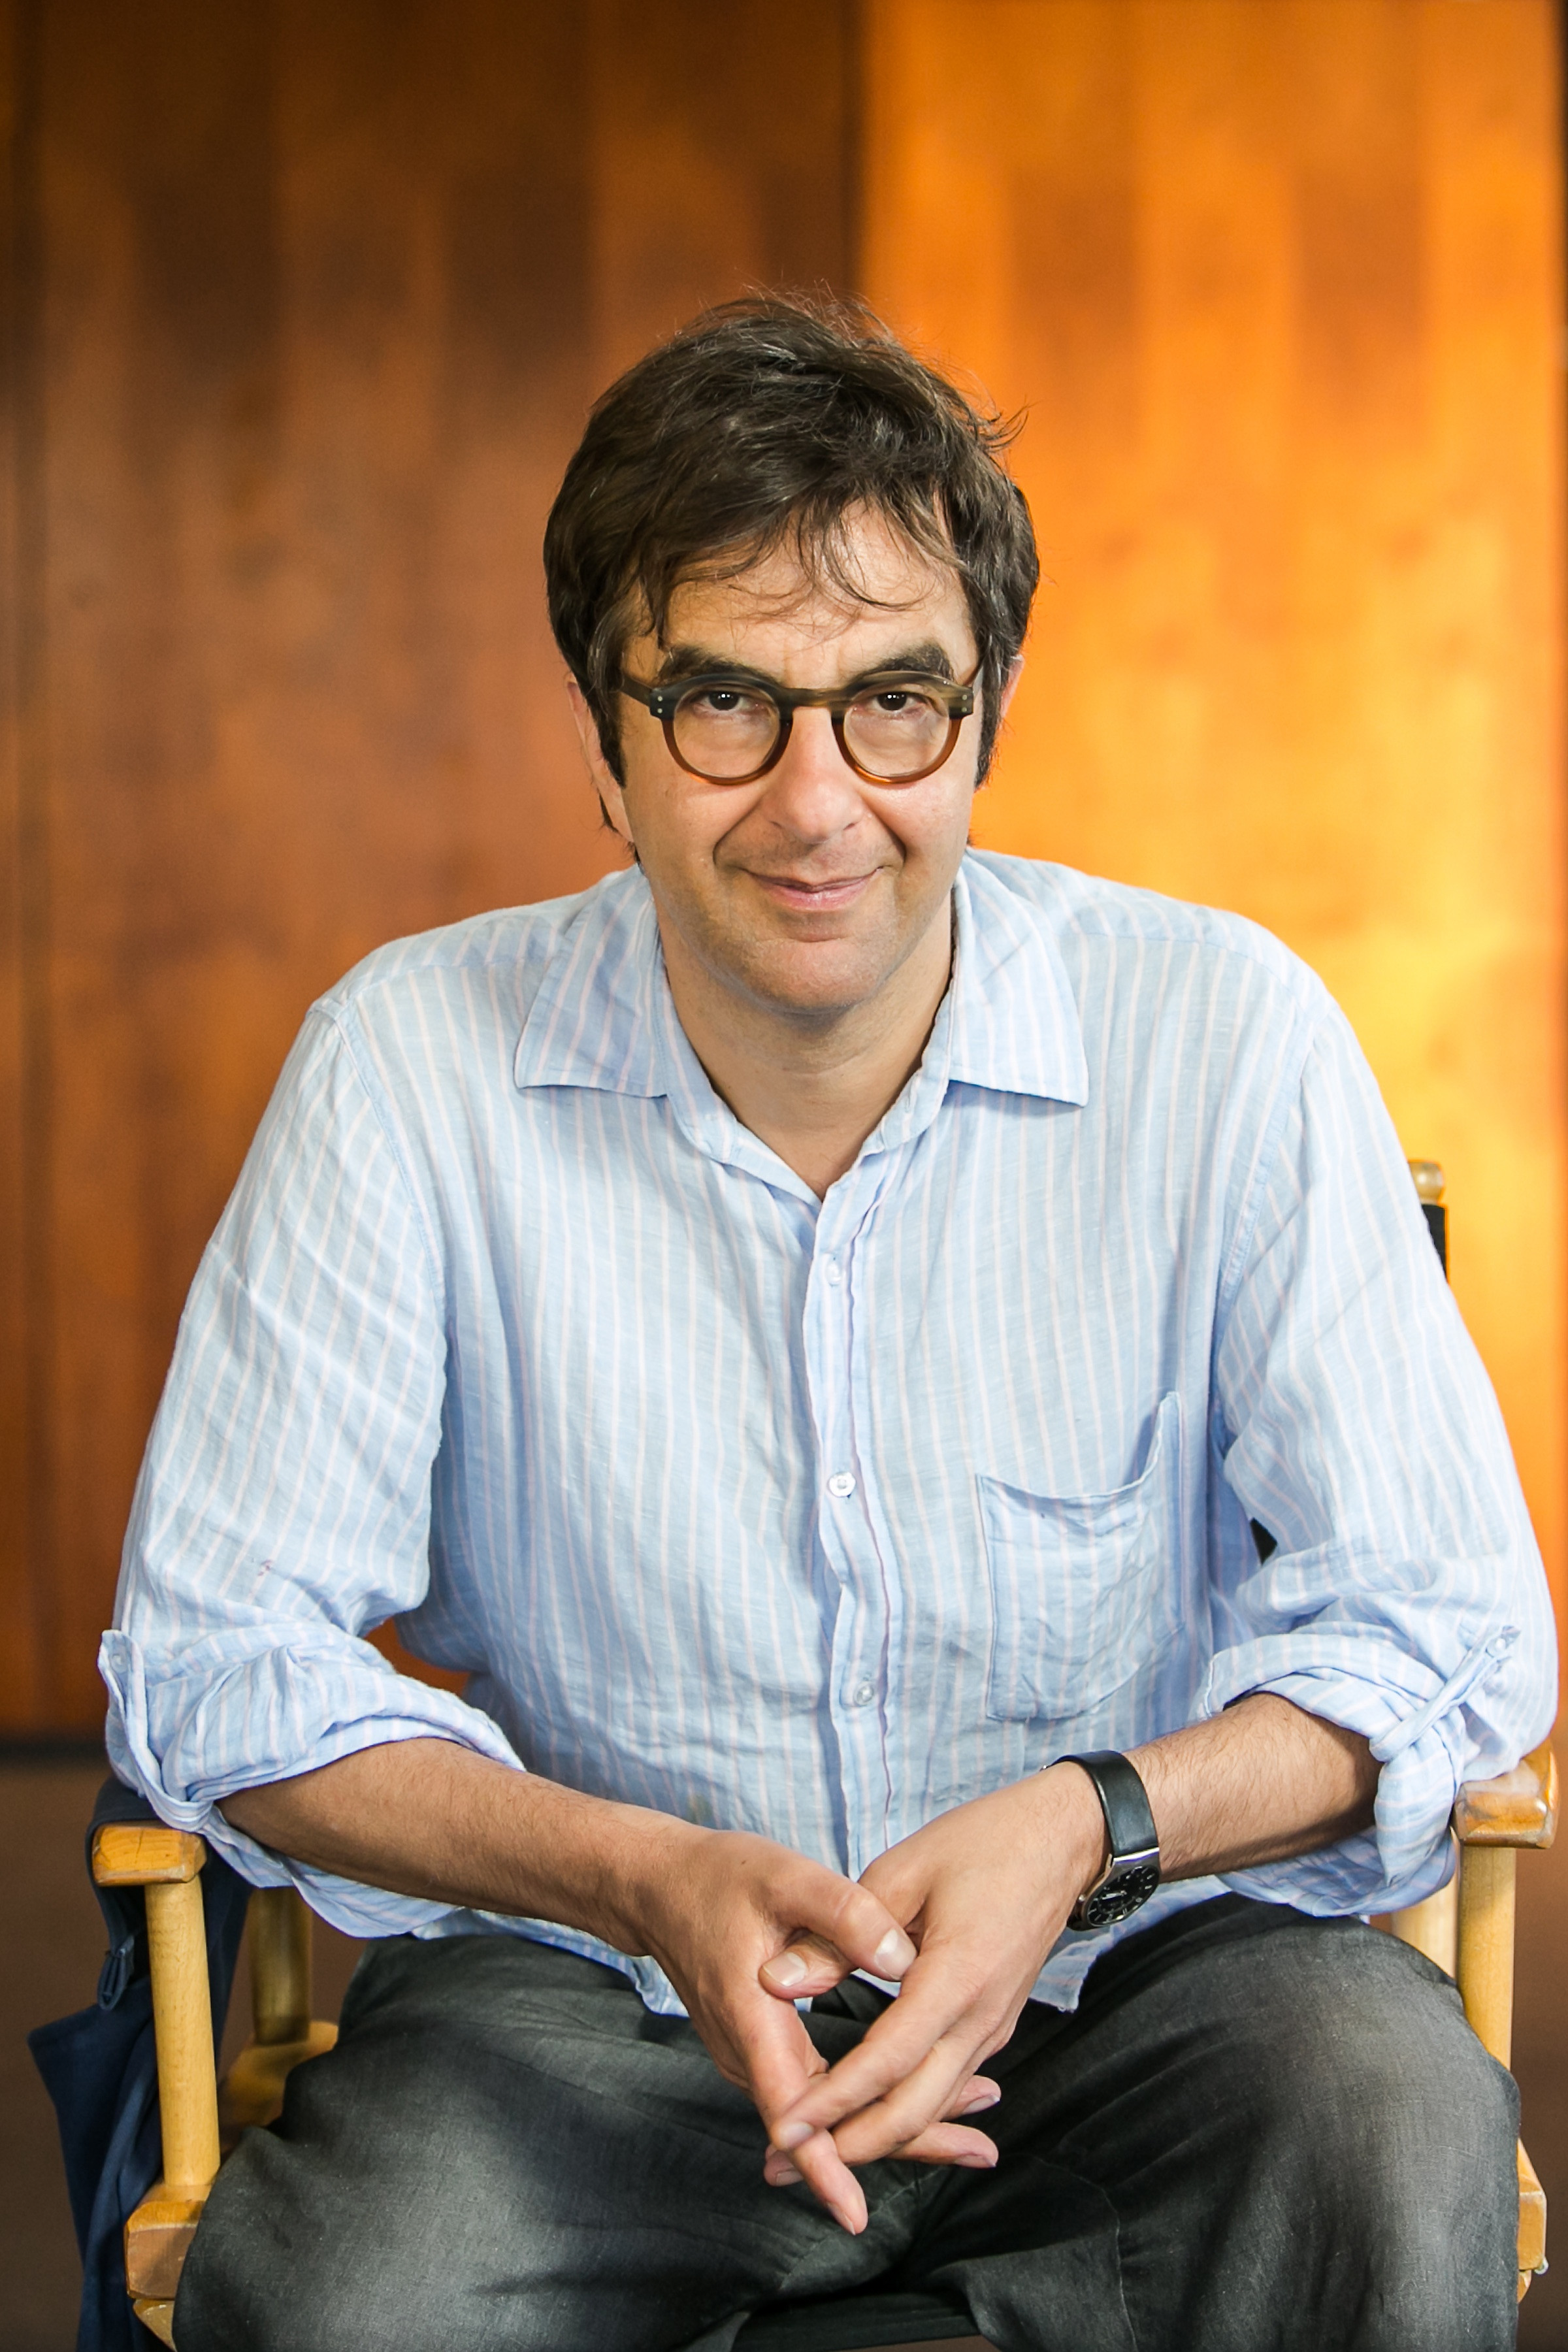 Atom Egoyan․ Golden Apricot has became one of the most important events in the cultural life